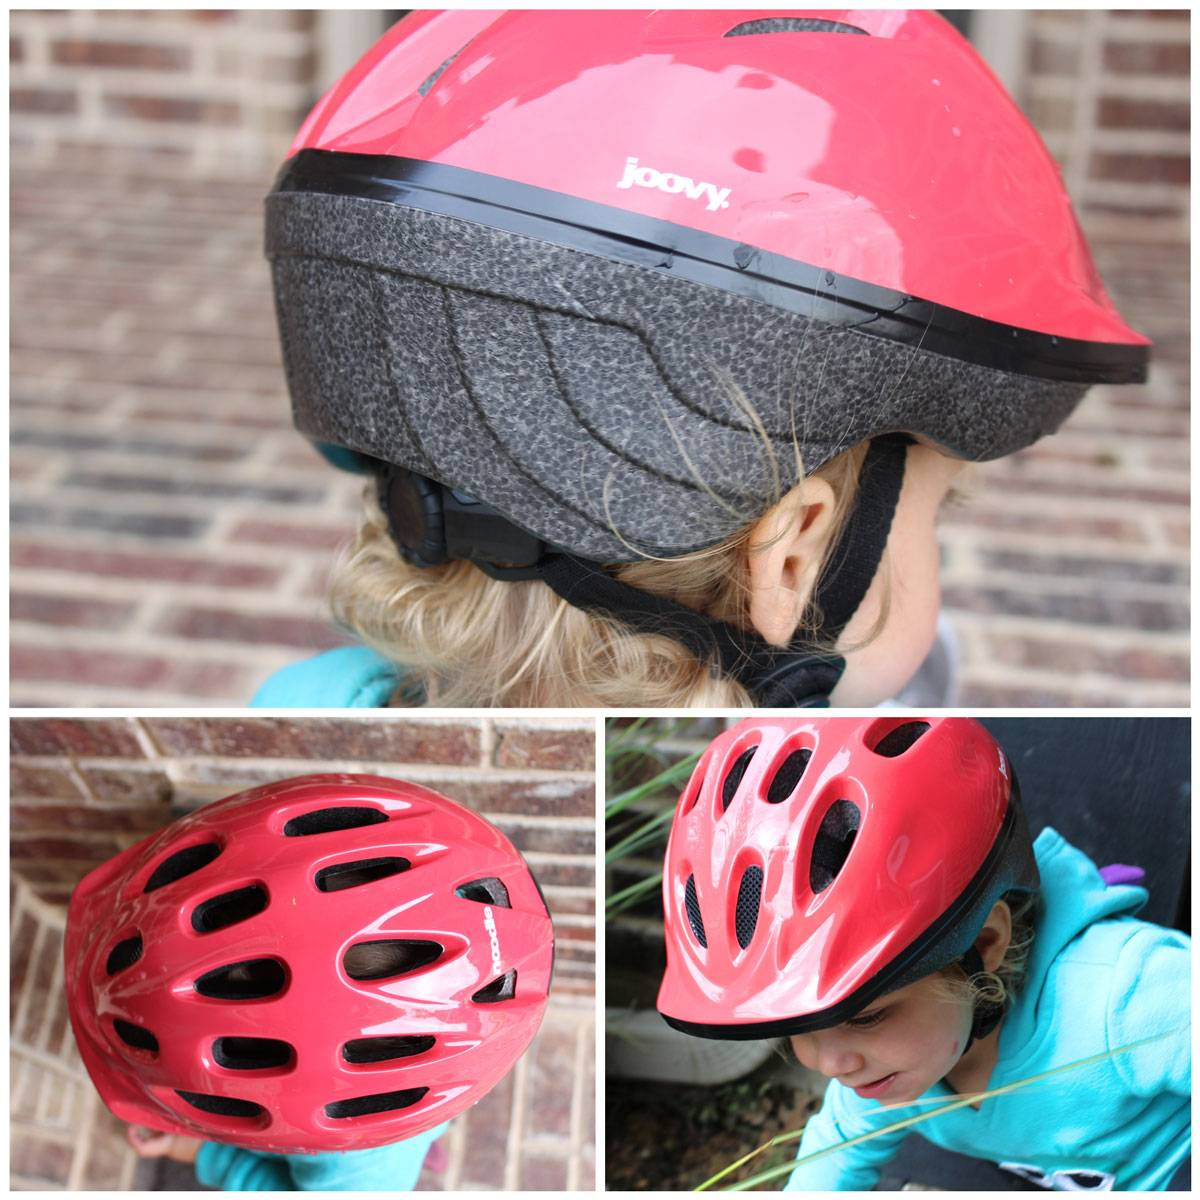 Joovy Noodle kid's helmet front the top and rear. Showcasing many vents, visor, and hardshell construction